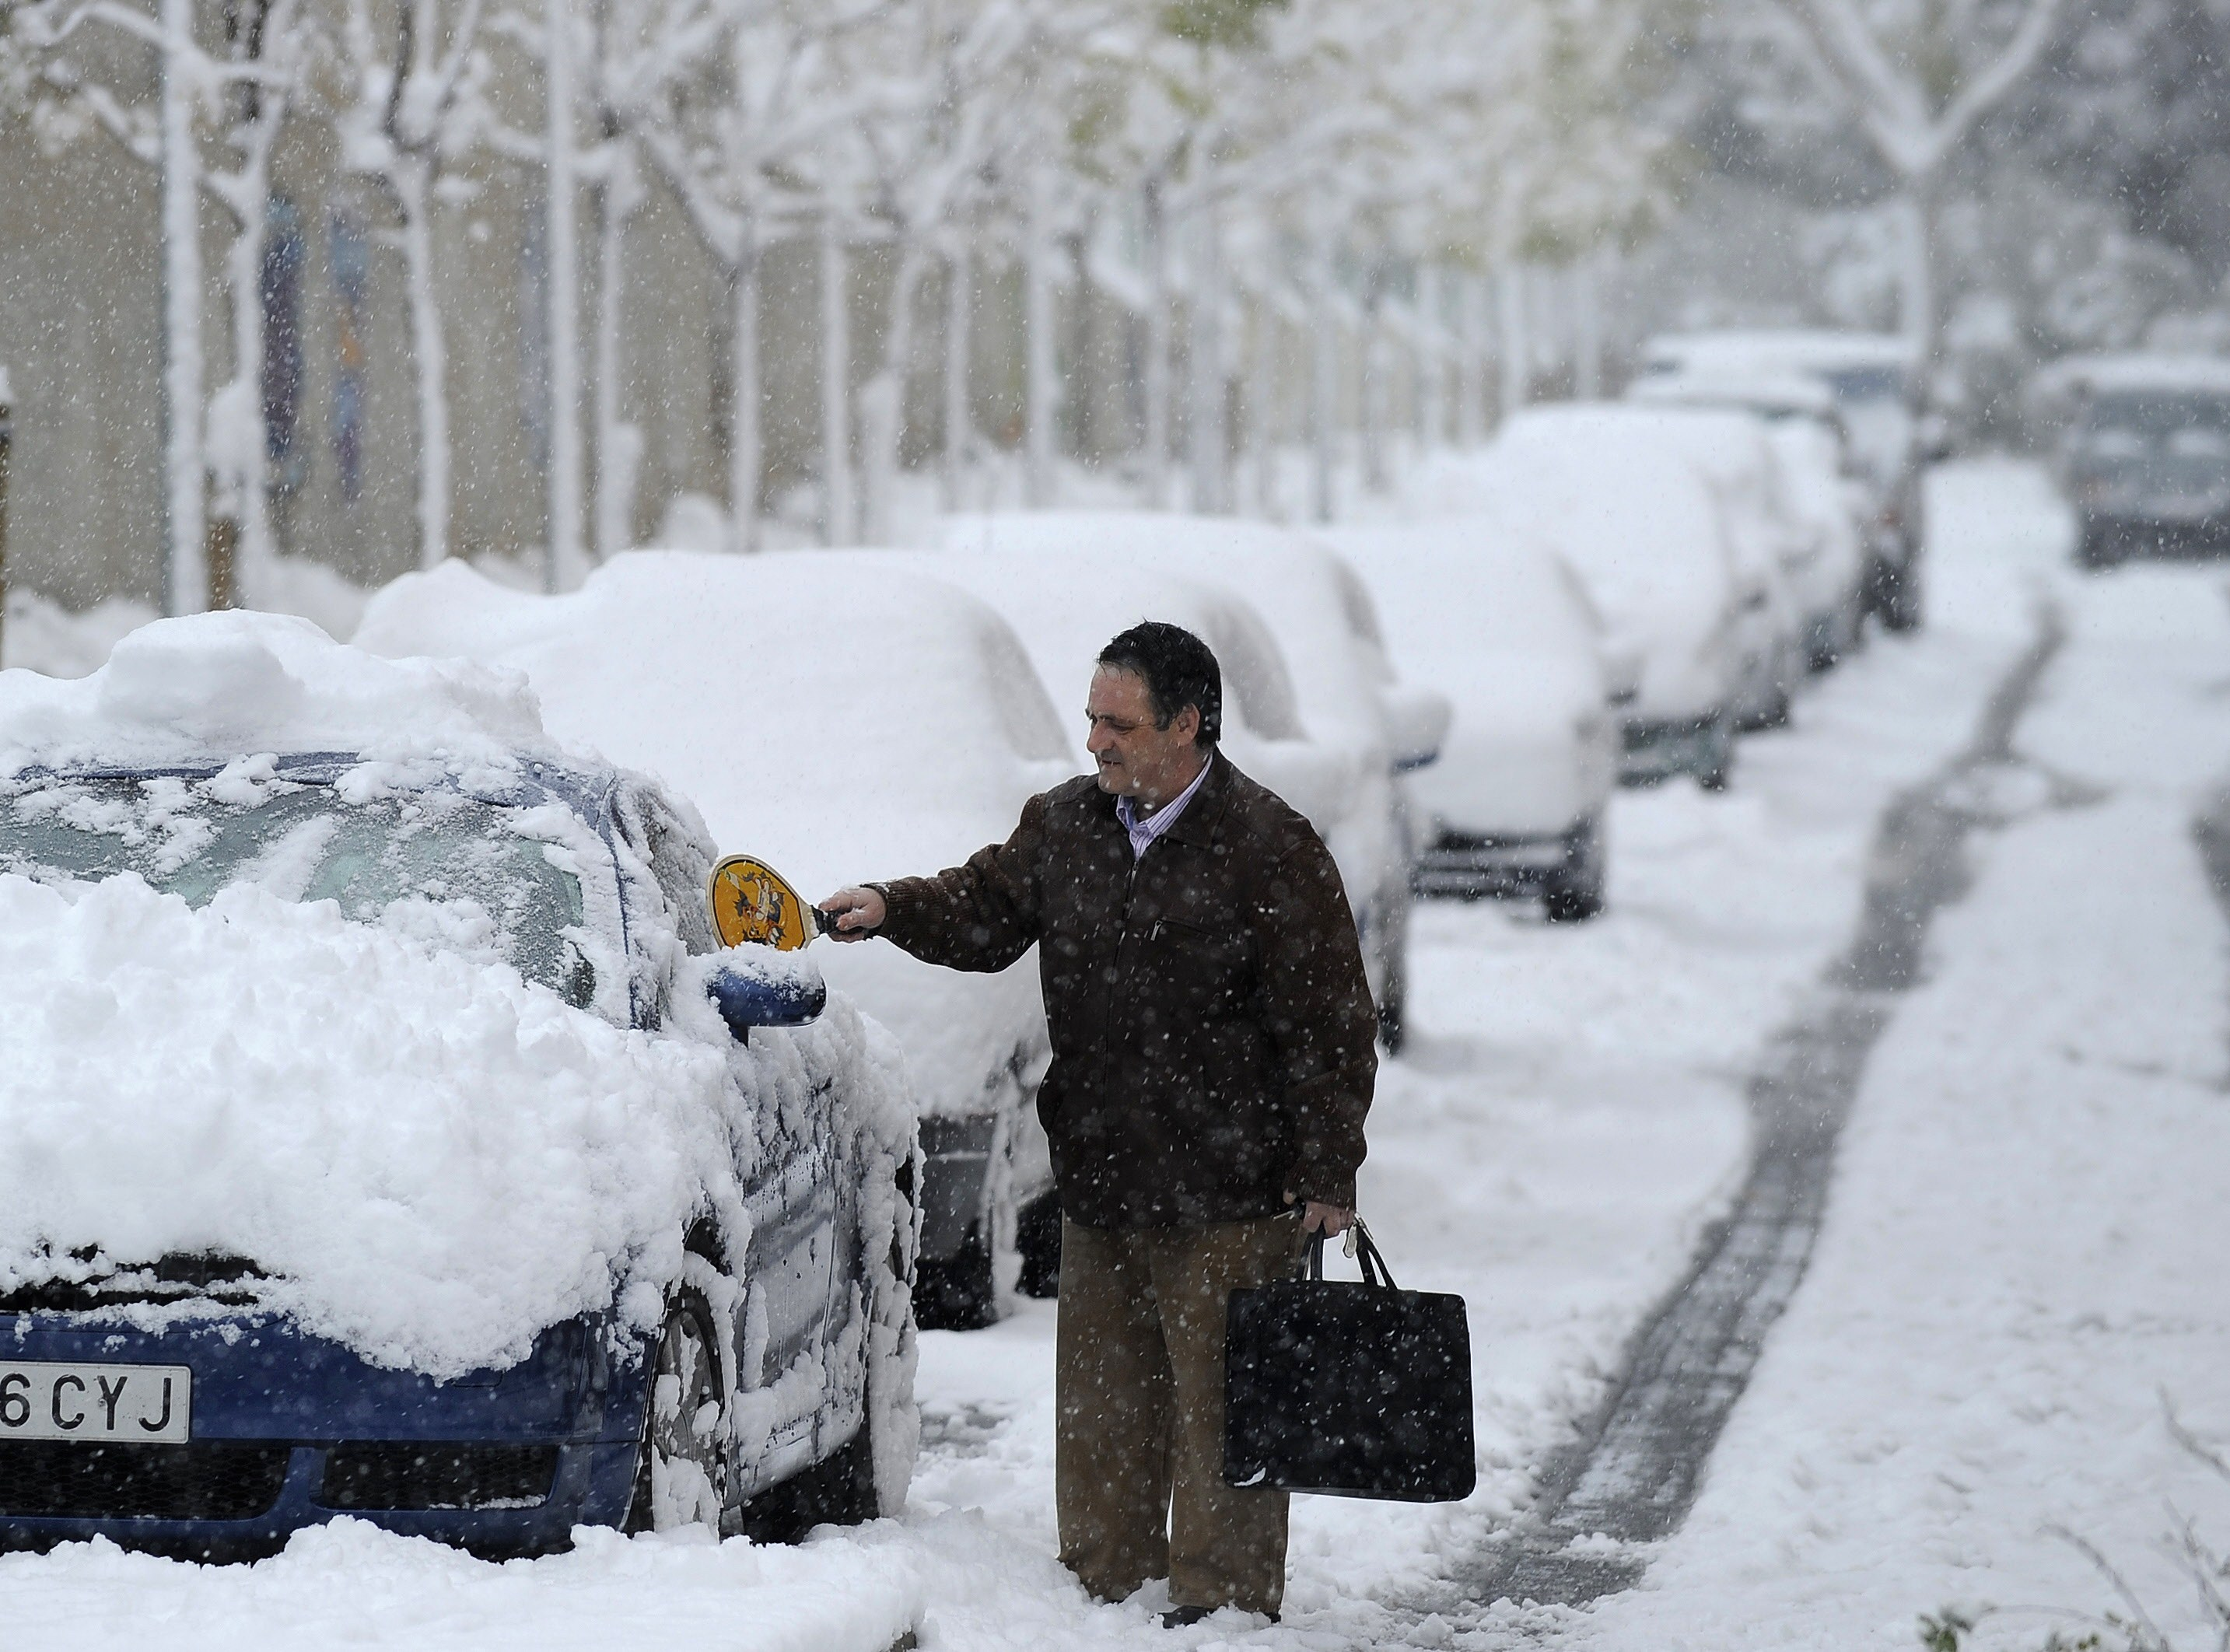 A man removes snow from his car, on December 14, 2009 in Aranjuez, near Madrid, during the first snow fall of the season. AFP PHOTO/Pedro ARMESTRE